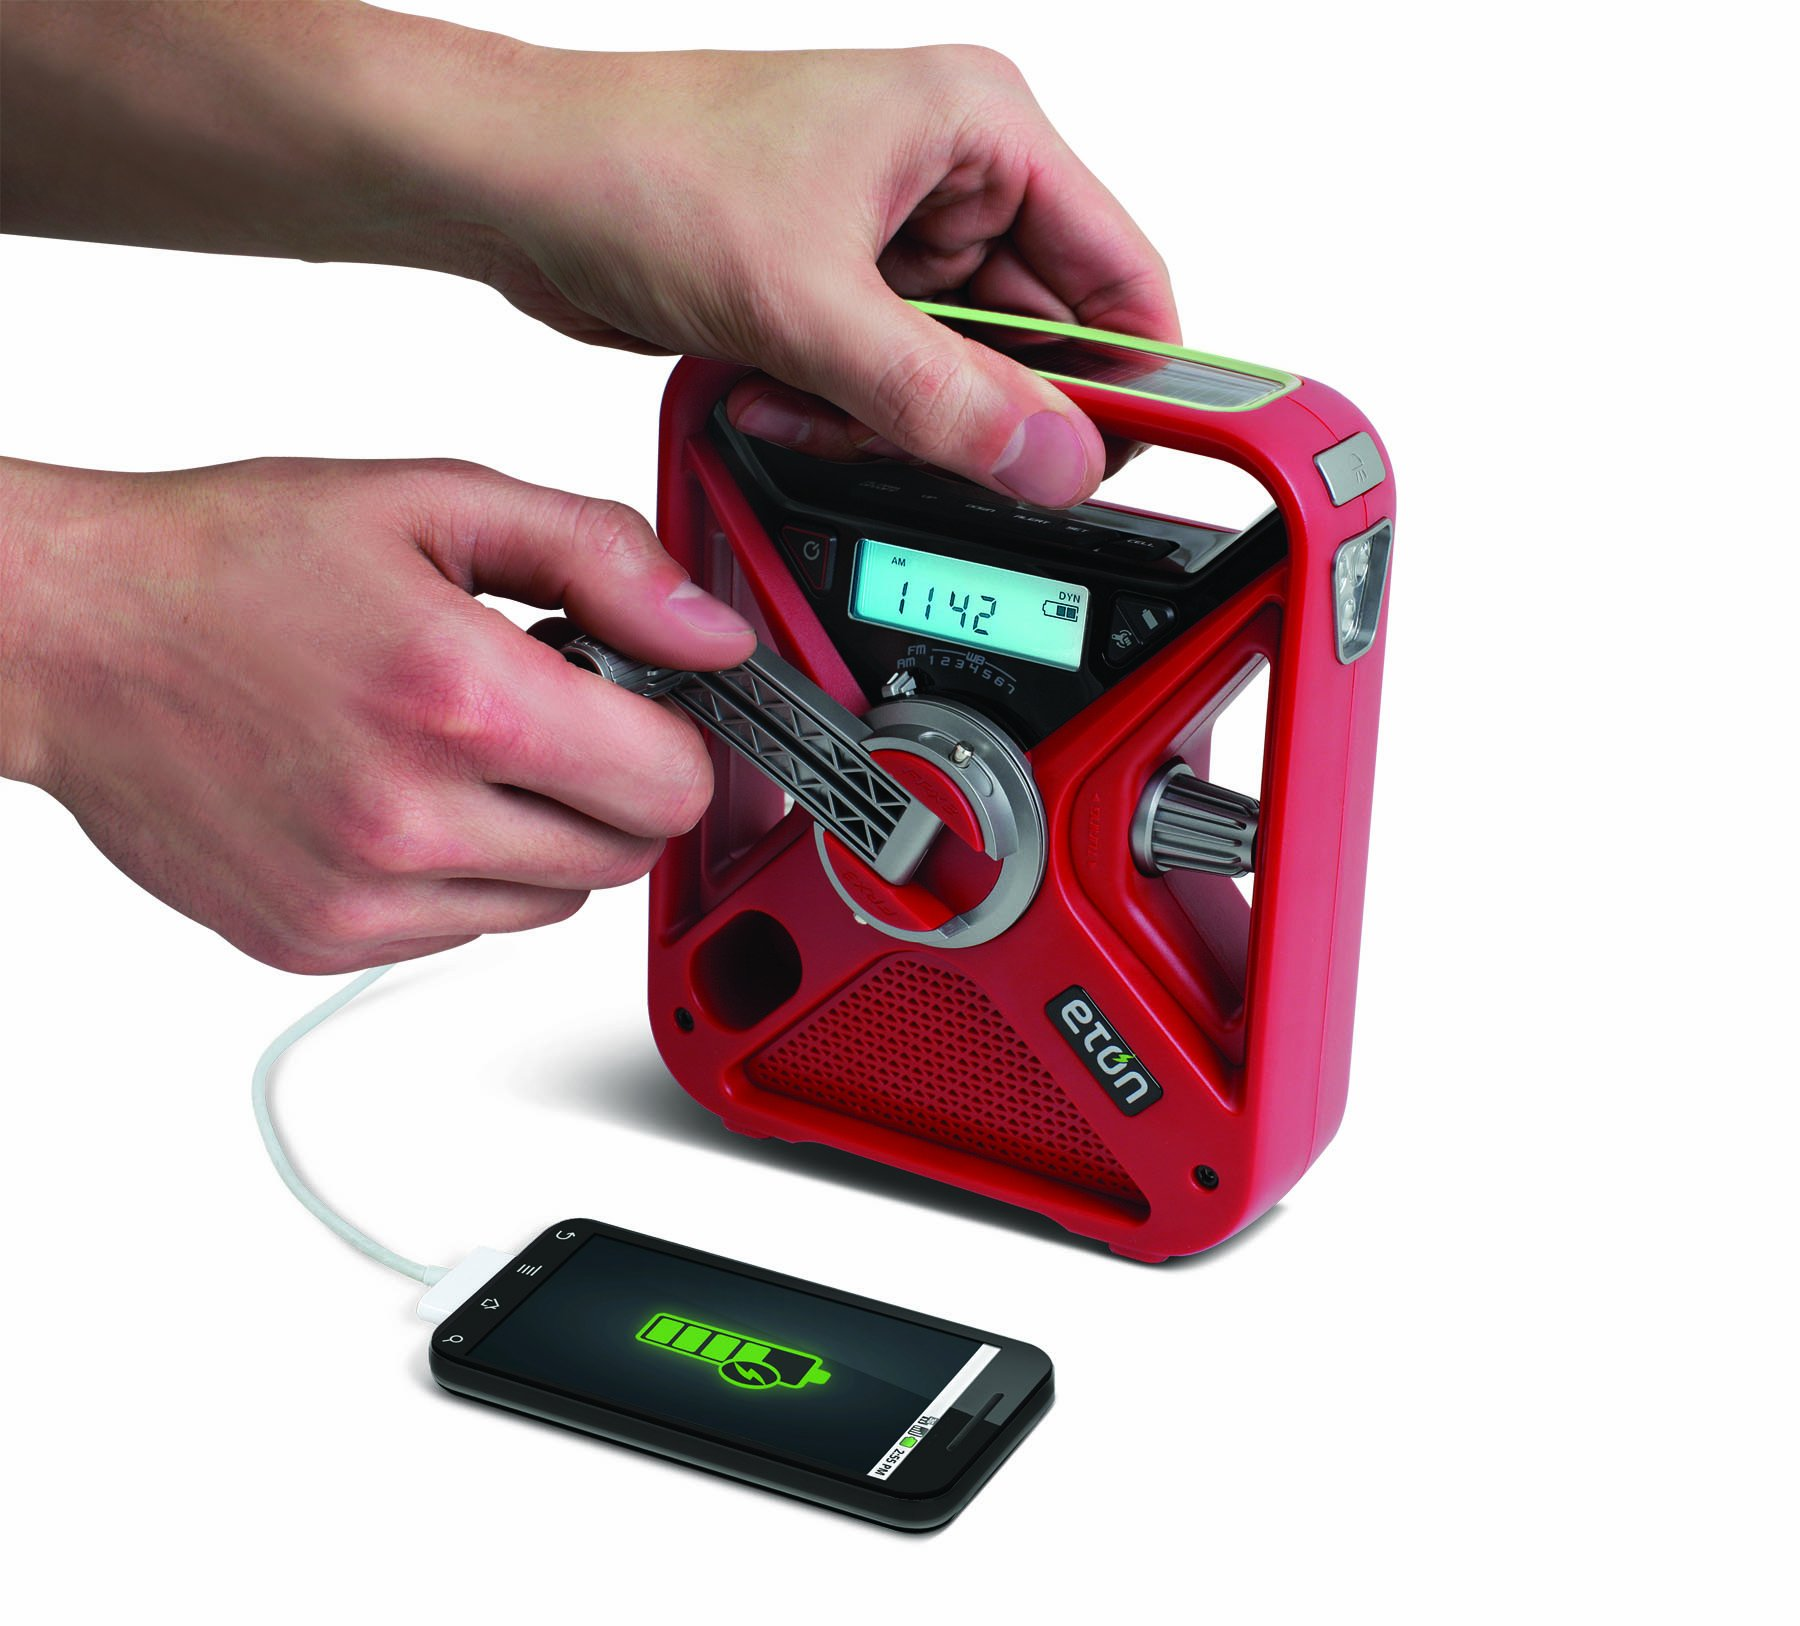 Eton FRX3 Hand Turbine AM / FM NOAA Weather Alert Radio with Smartphone Charger - Red, NFRX3WXR